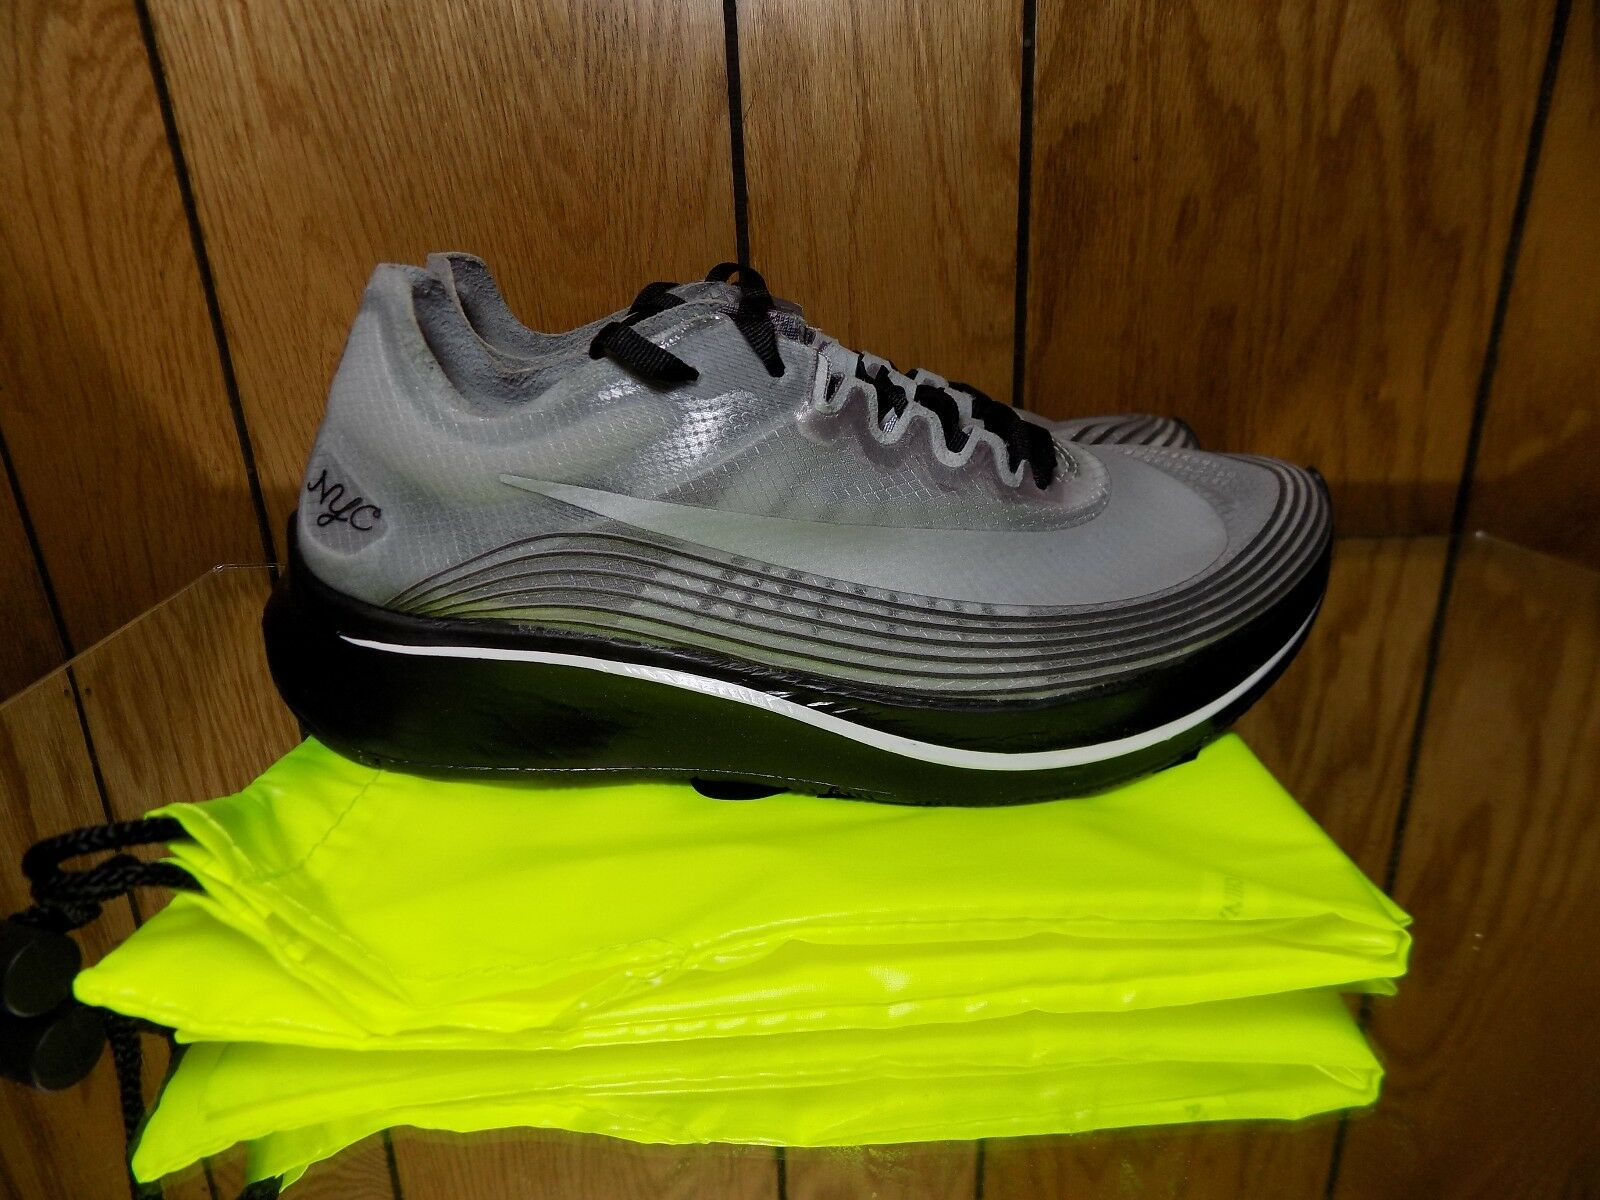 Nike NikeLab Zoom Fly SP NYC New York Marathon Black White AH5088 001 Size 6